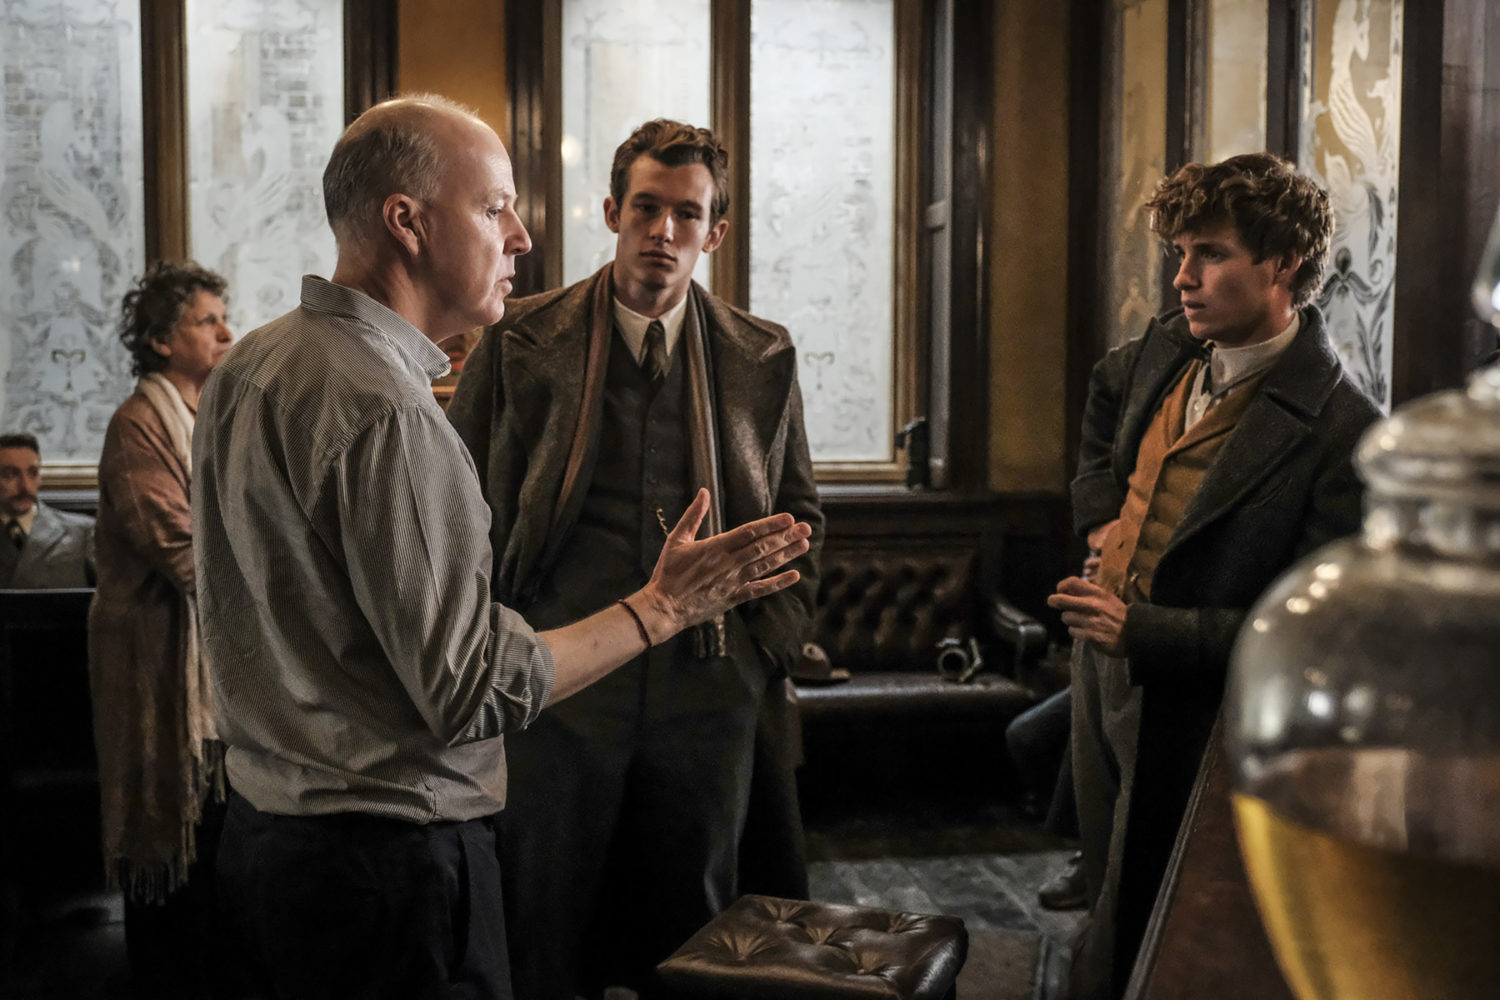 """Fantastic Beasts: The Crimes of Grindelwald"": David Yates, Callum Turner, and Eddie Redmayne behind the scenes (exclusive)"